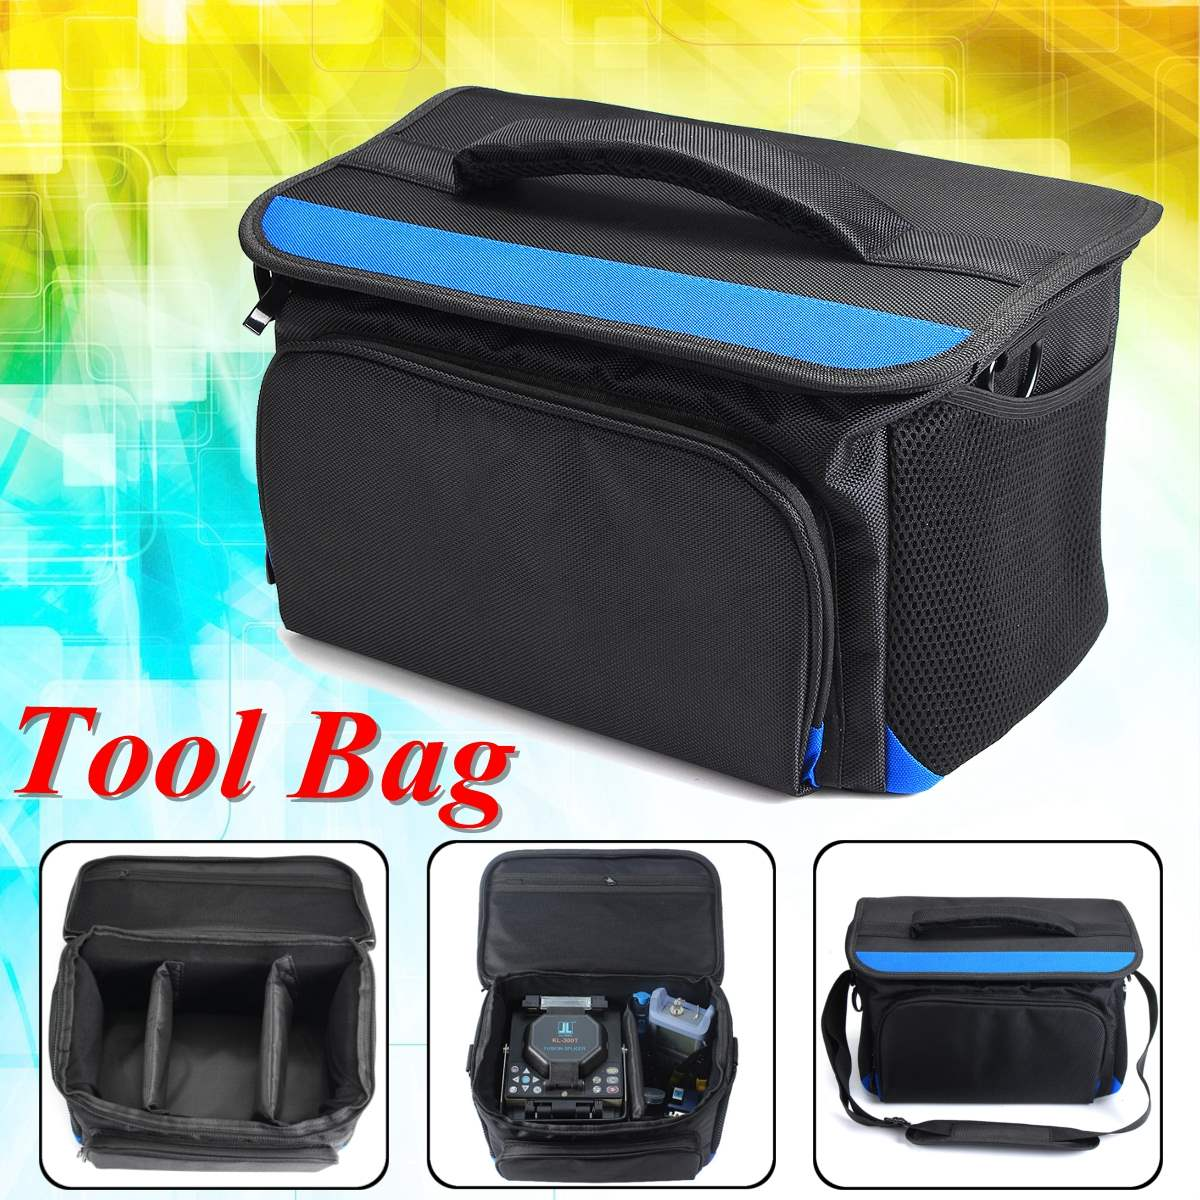 Tools Bag Waterproof Cover For Fusion Splicer Welder Tools Bag Wide Mouth Electrician Bags With 2 Sponge Compartment welder machine plasma cutter welder mask for welder machine